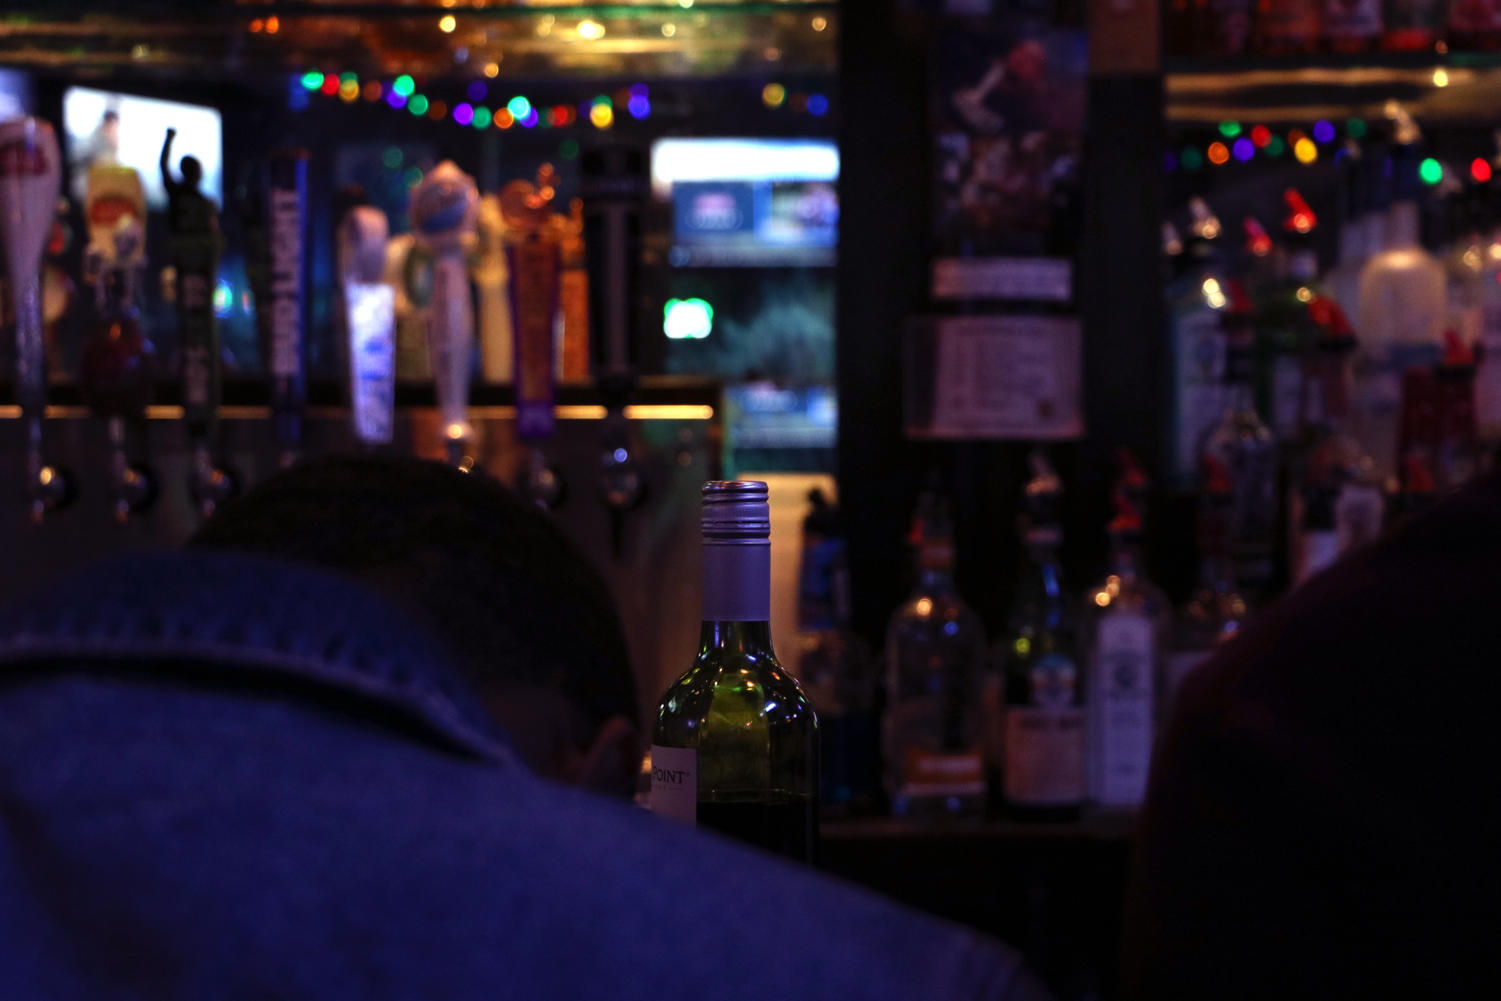 A patron sits at a college bar. Many college bars have a series of health code violations. Photo credit: Hannah Renton